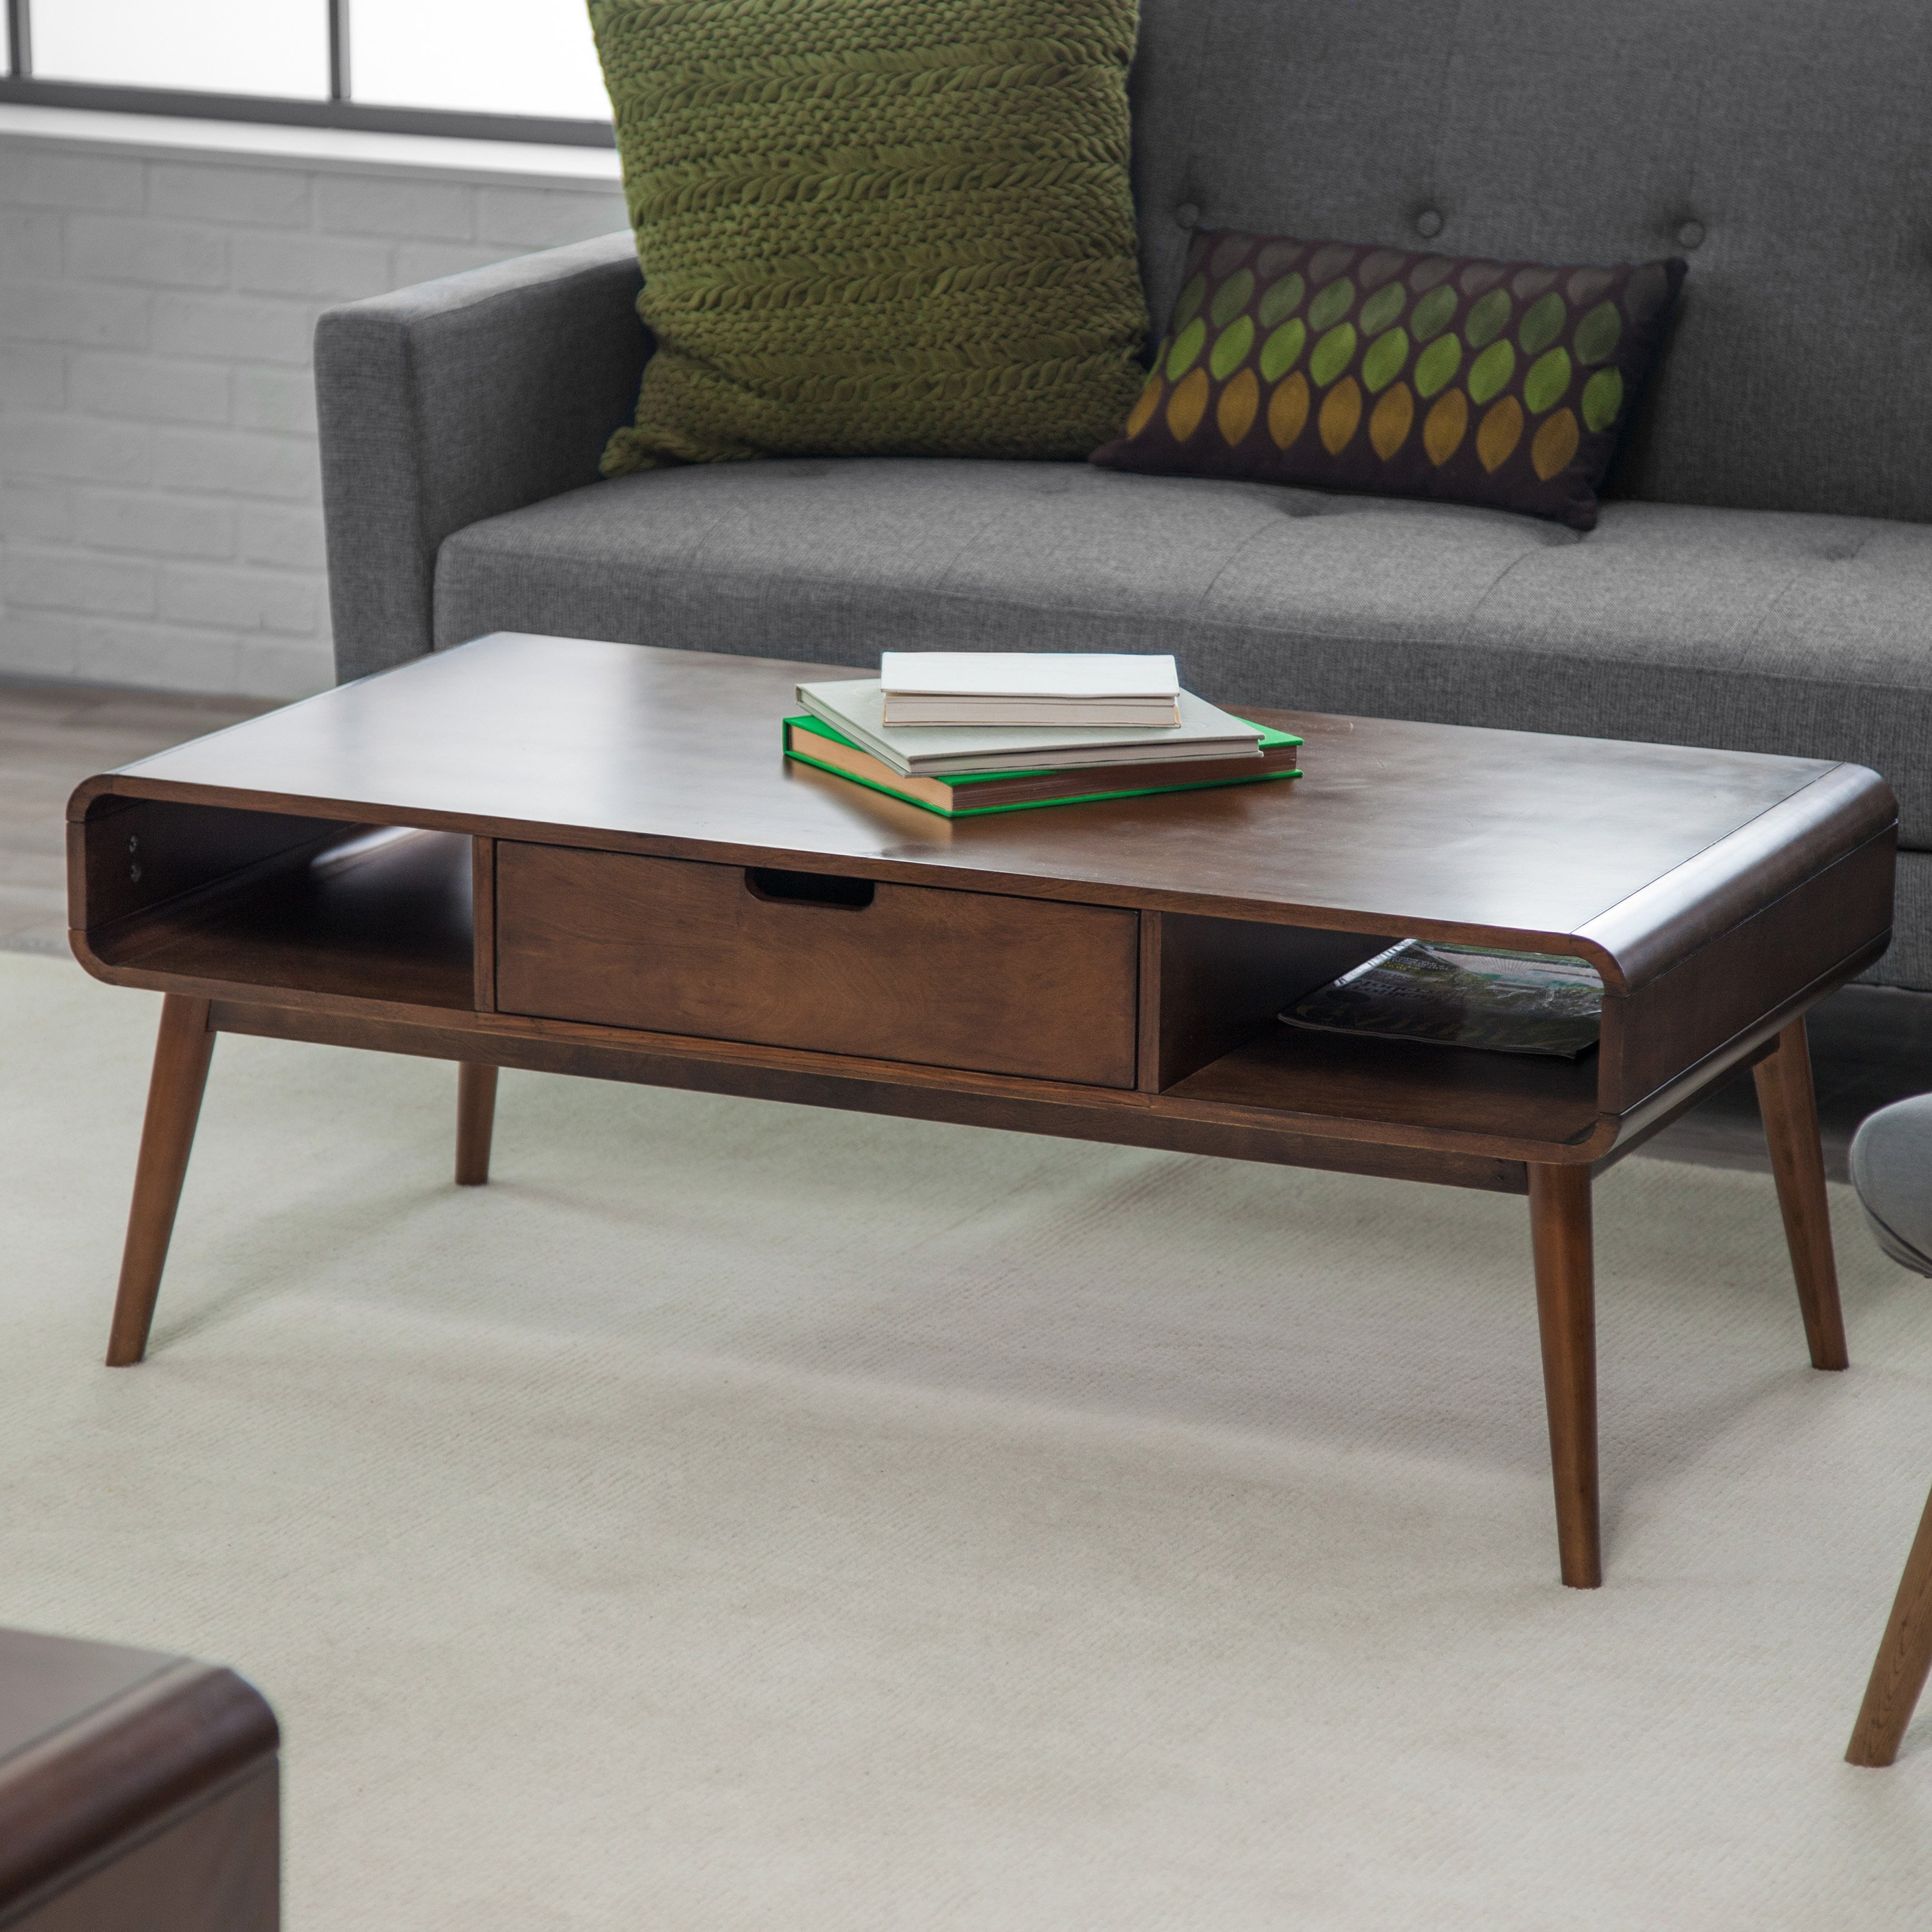 Vintage Mid Century Coffee Table Weisshouse – Andrewab In Well Known Carson Carrington Astro Mid Century Coffee Tables (Gallery 16 of 20)